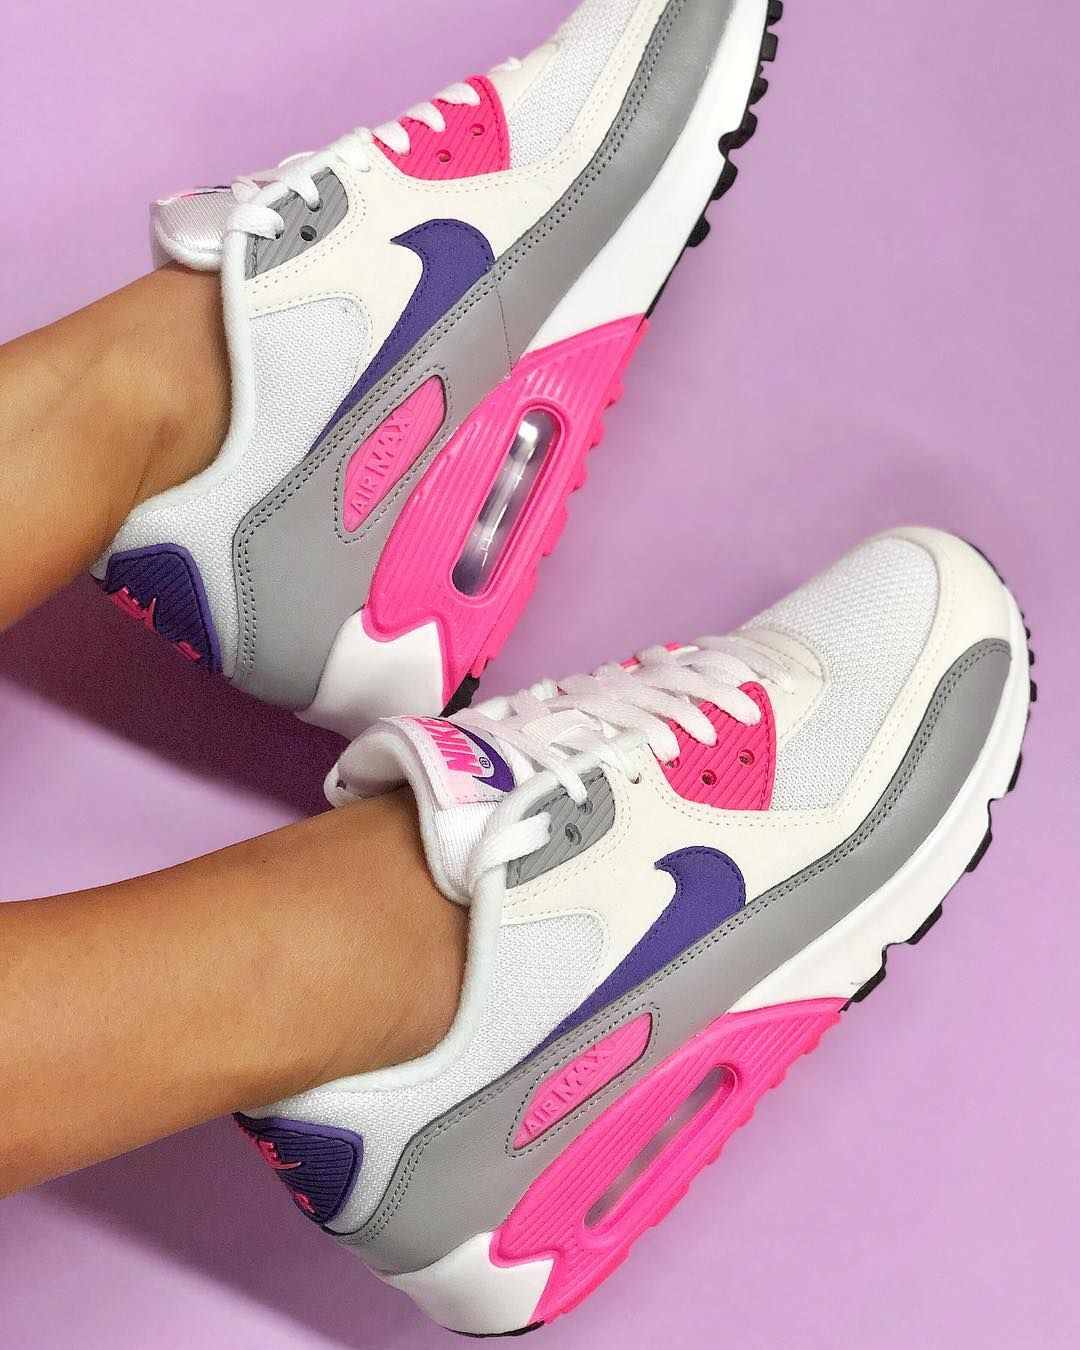 new arrivals 80298 ff14b We take a look at this classic Nike Air Max 90 women's shoe in a winning  colour combination of white, purple, grey and pink.